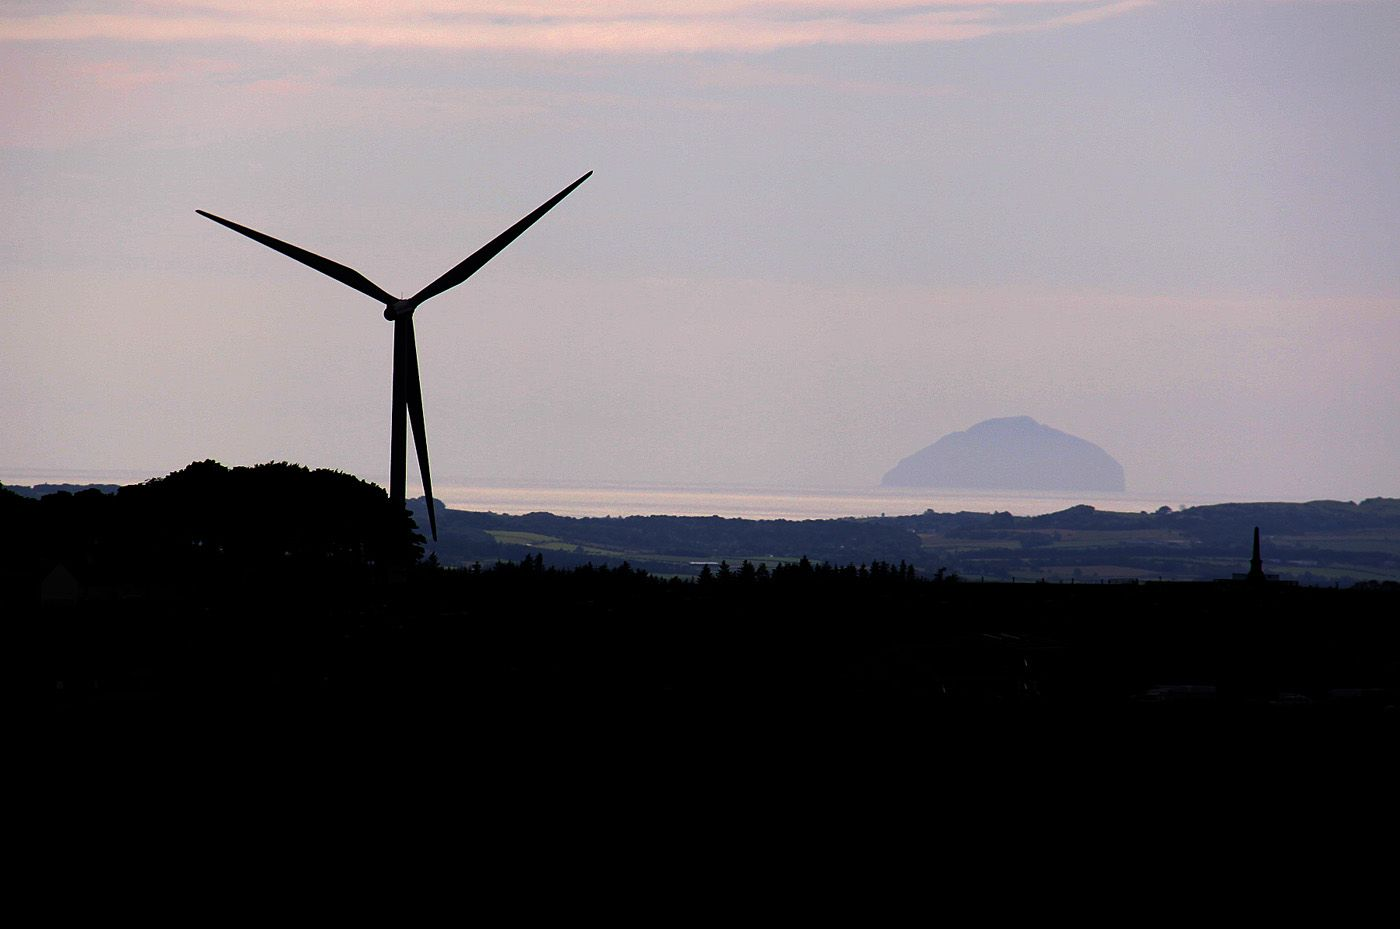 Ailsa Craig from the viewpoint at Whitelee Windfarm, Eaglesham, East Renfrewshire.